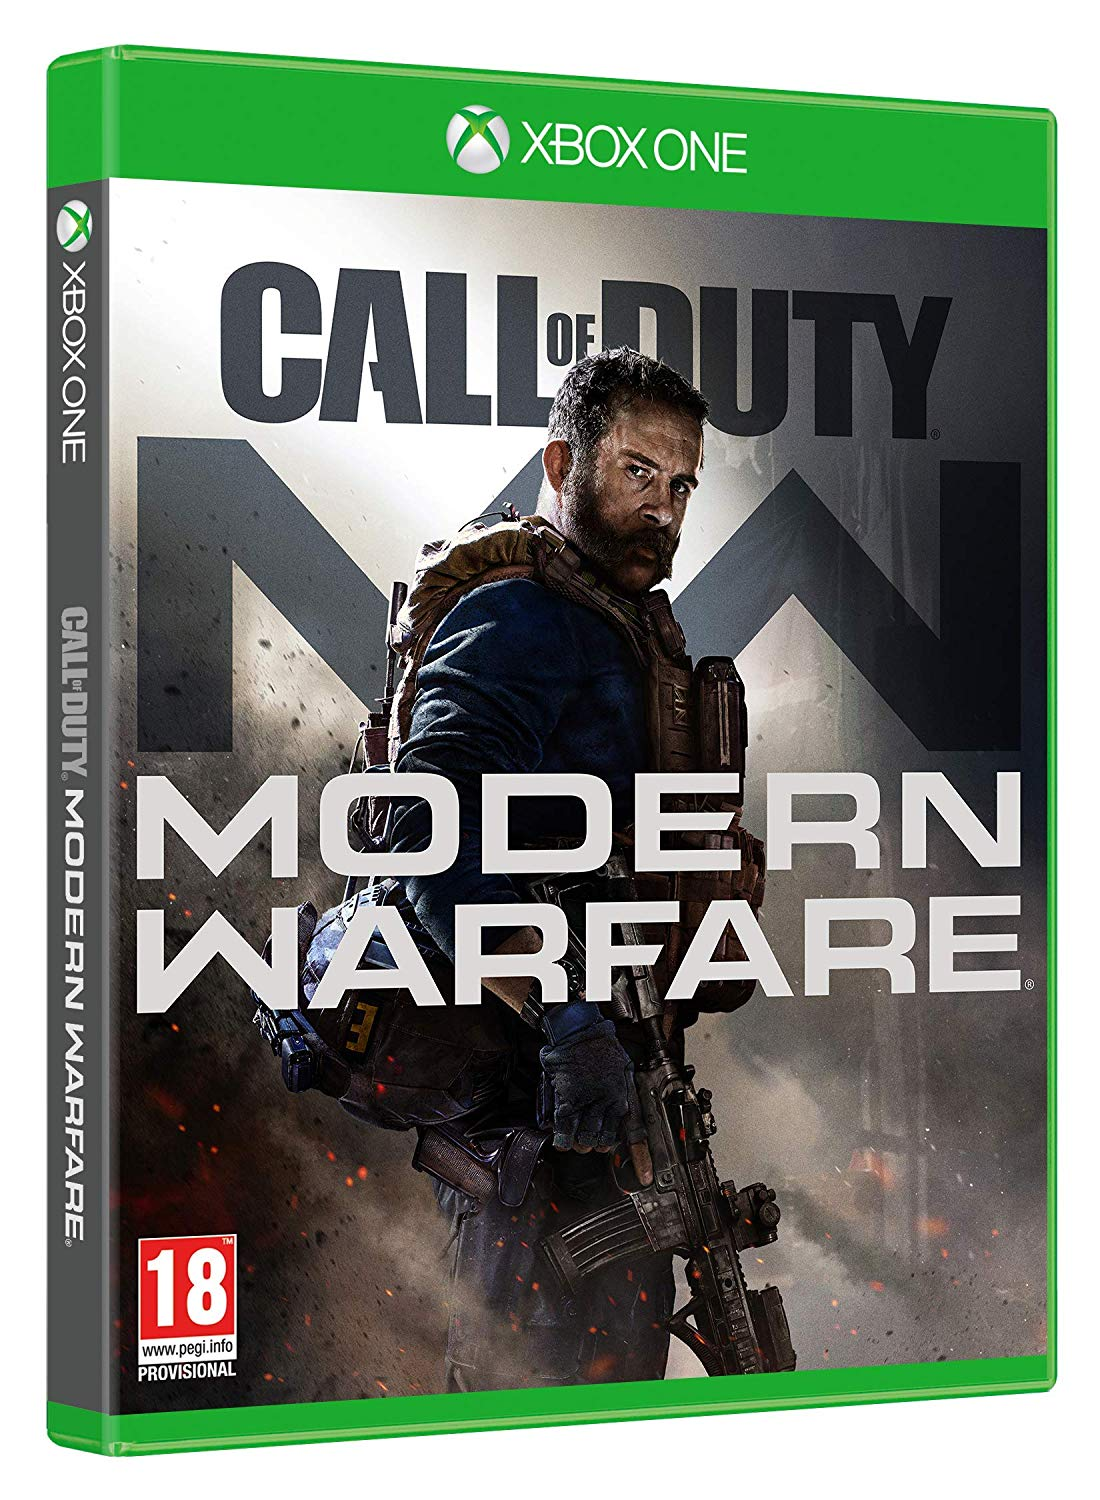 CALL OF DUTY MODERN WARFARE_3d_xon